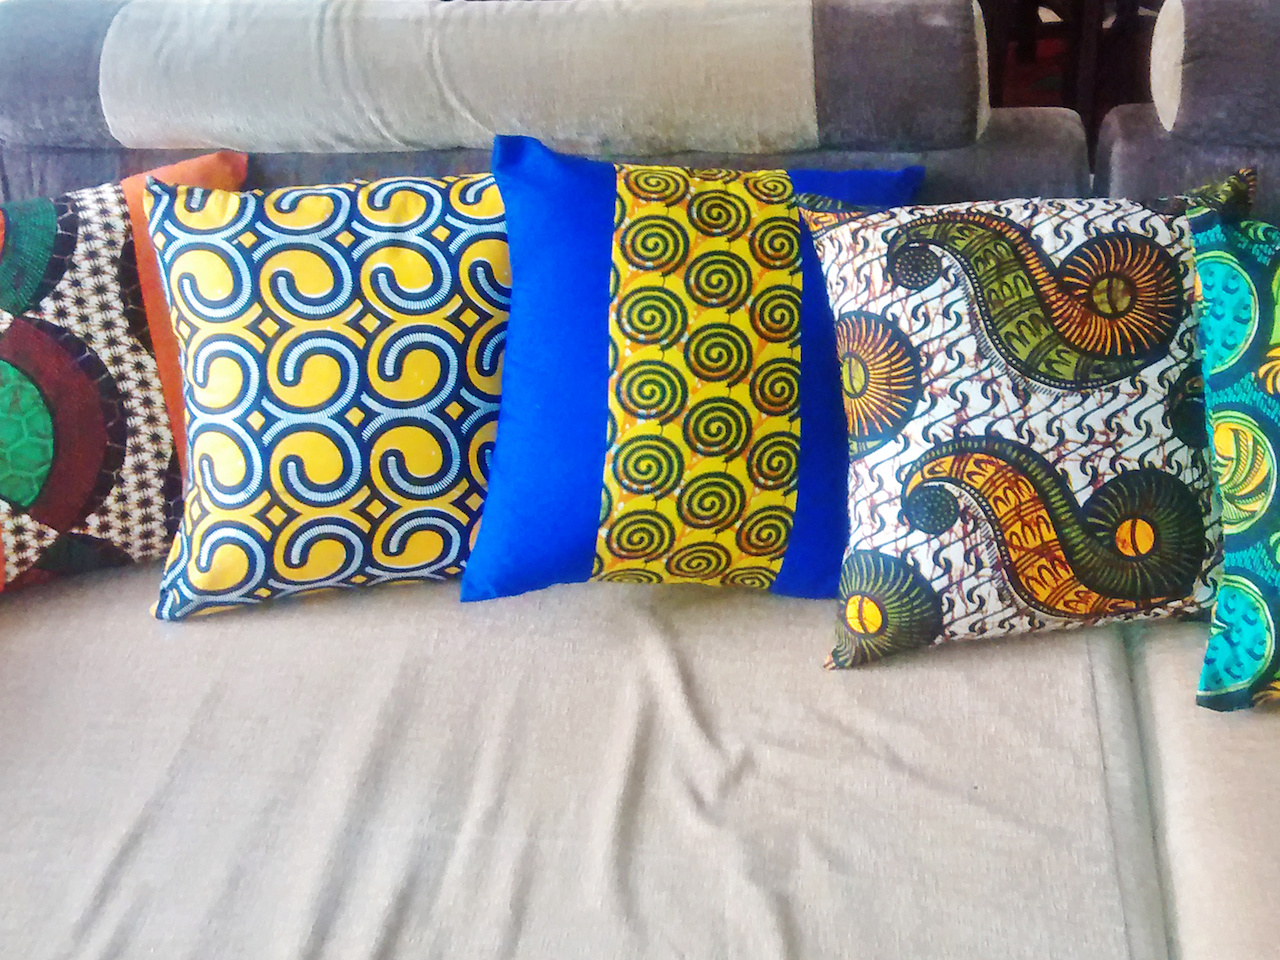 Throw pillows are an easy way to perk up a room and Mbabzi has enough variety to please anyone's taste and color scheme.